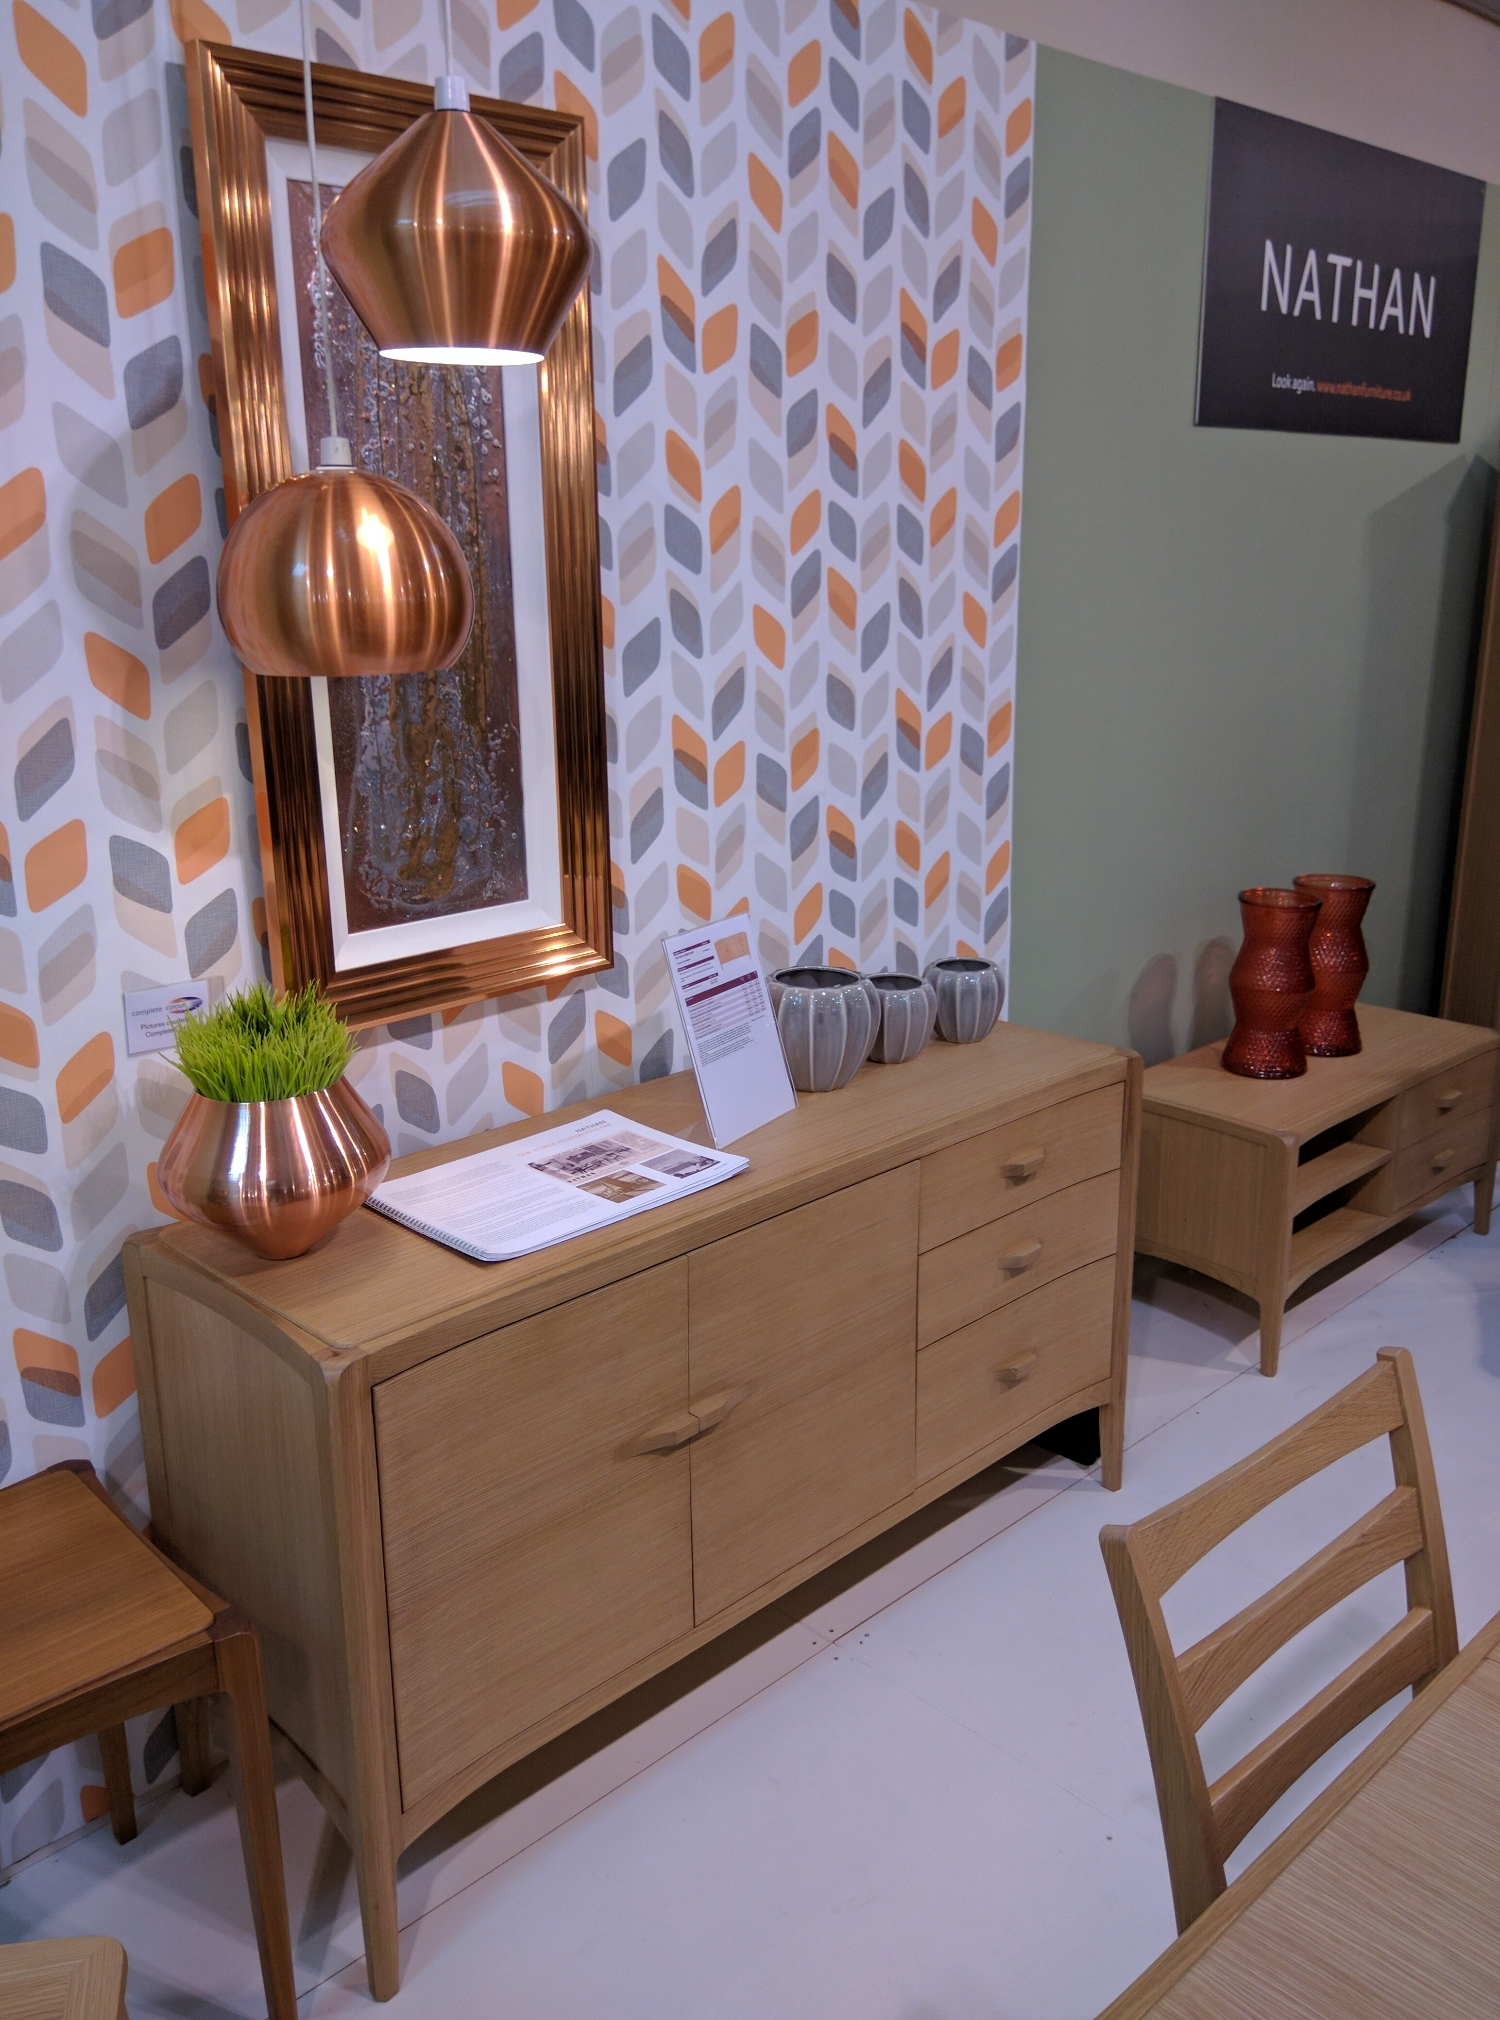 Contour  - designed for Nathan Furniture at the AIS Furniture Show